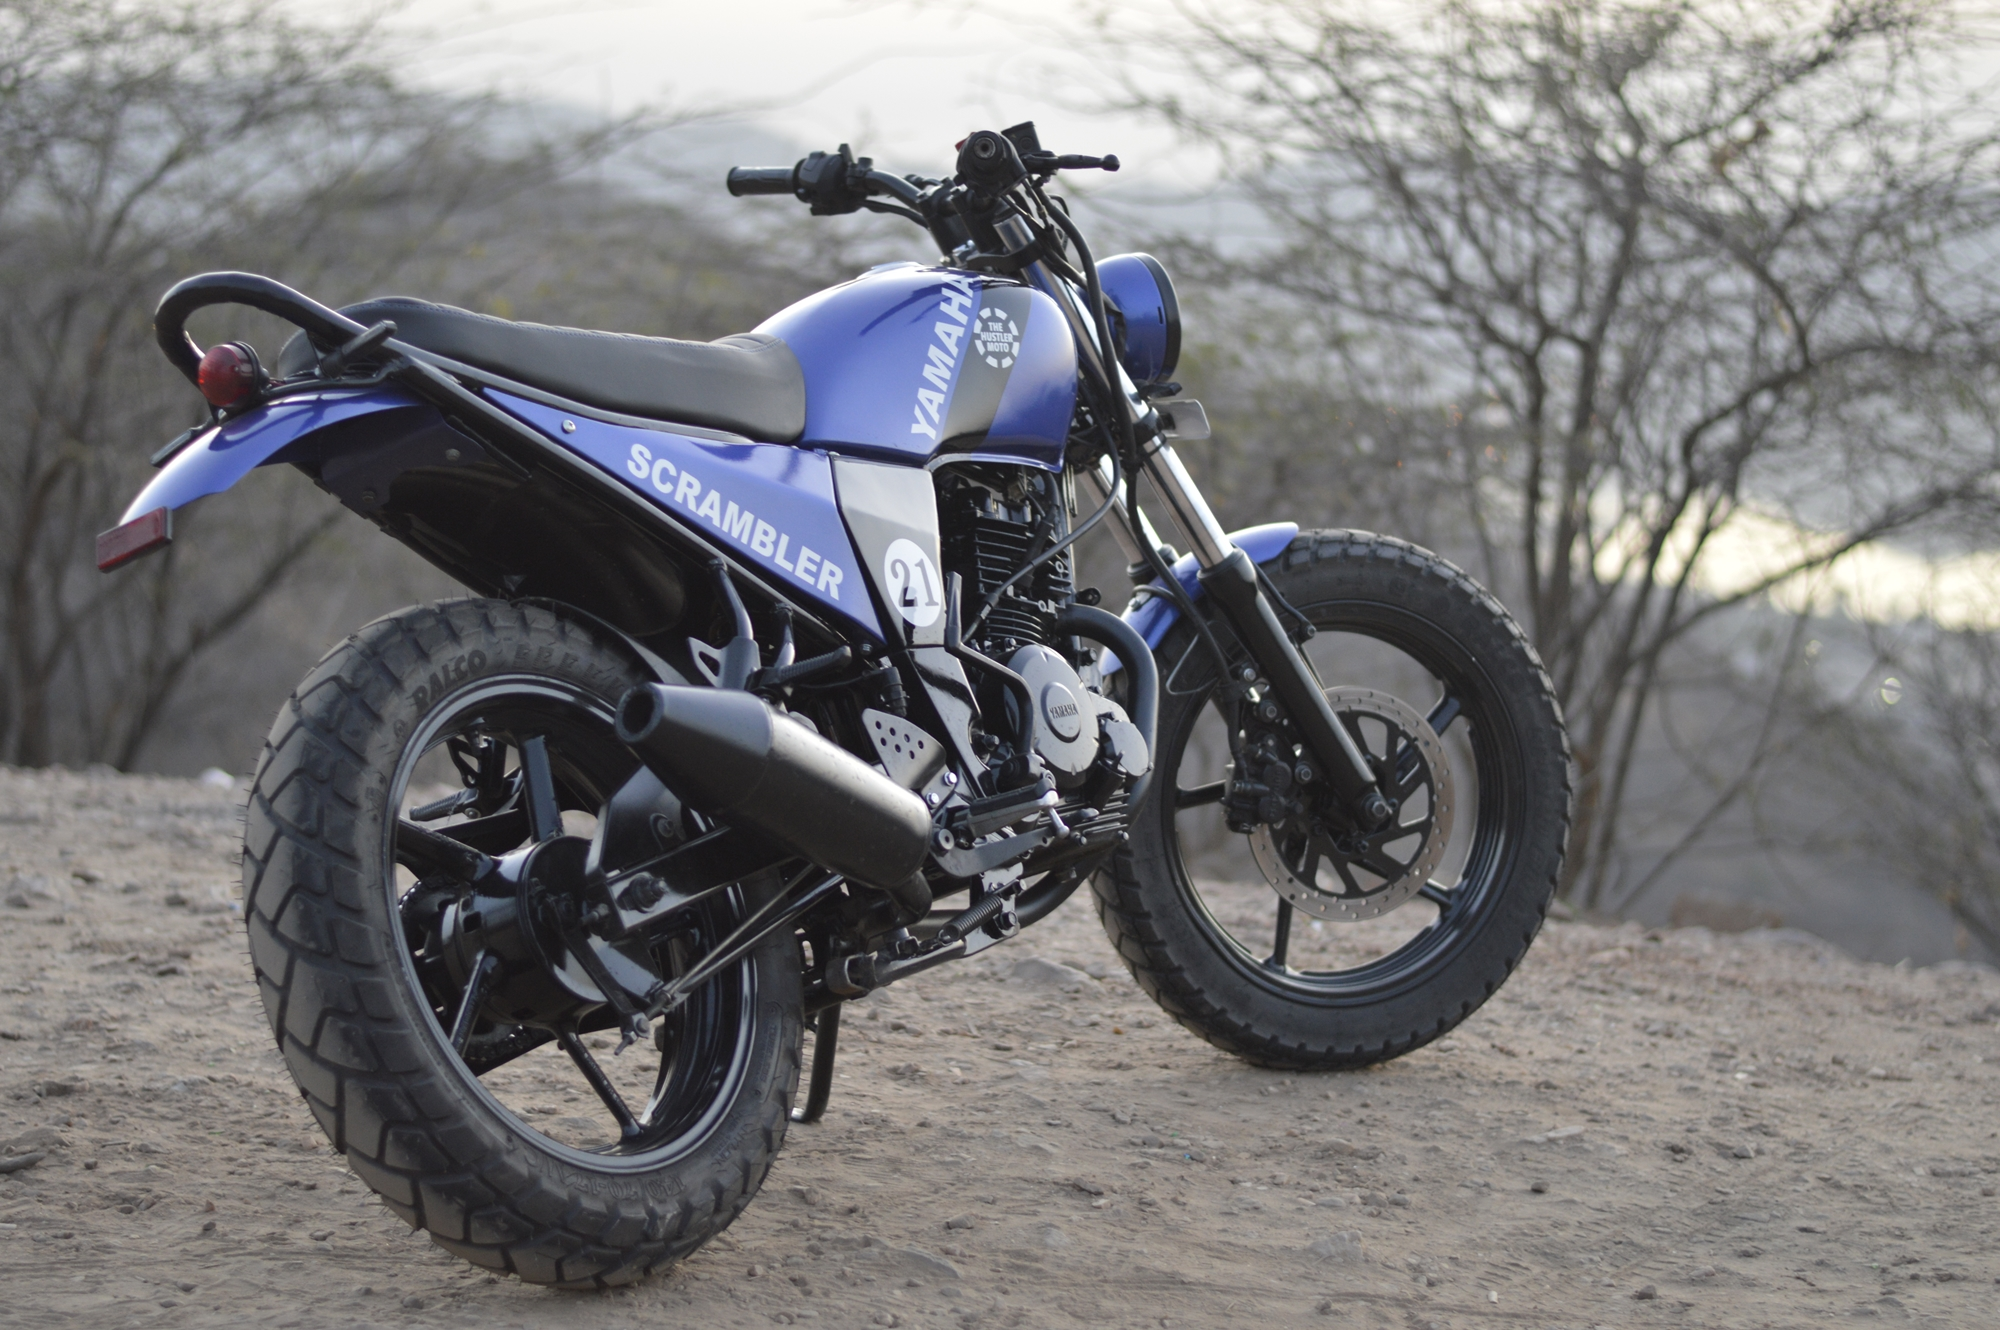 Modified Yamaha FZ scrambler by The Hustler Moto